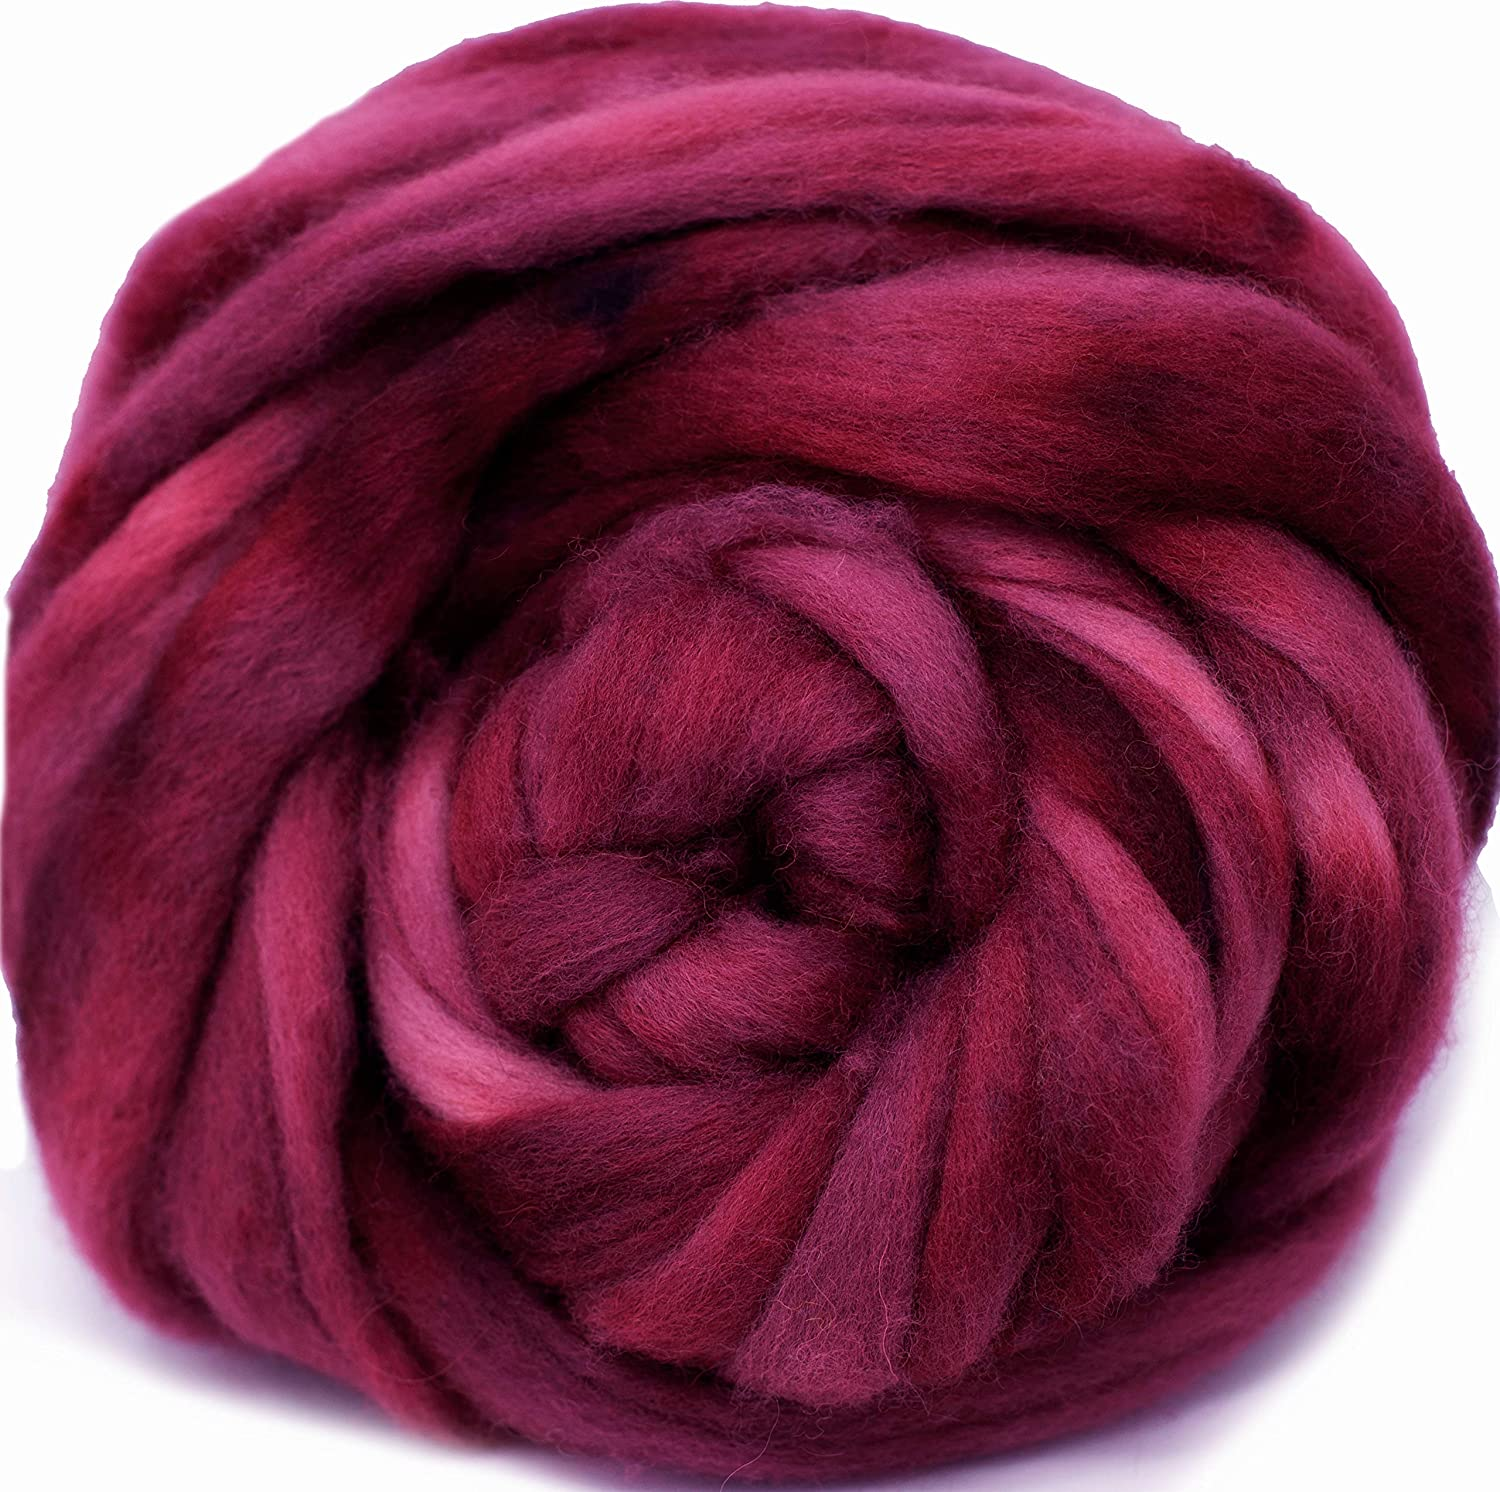 Weaving Wall Hangings and Embellishments 1 Ounce Wool Roving Hand Dyed Super Soft BFL Combed Top Pre-Drafted for Easy Hand Spinning Artisanal Craft Fiber ideal for Felting Woodrose